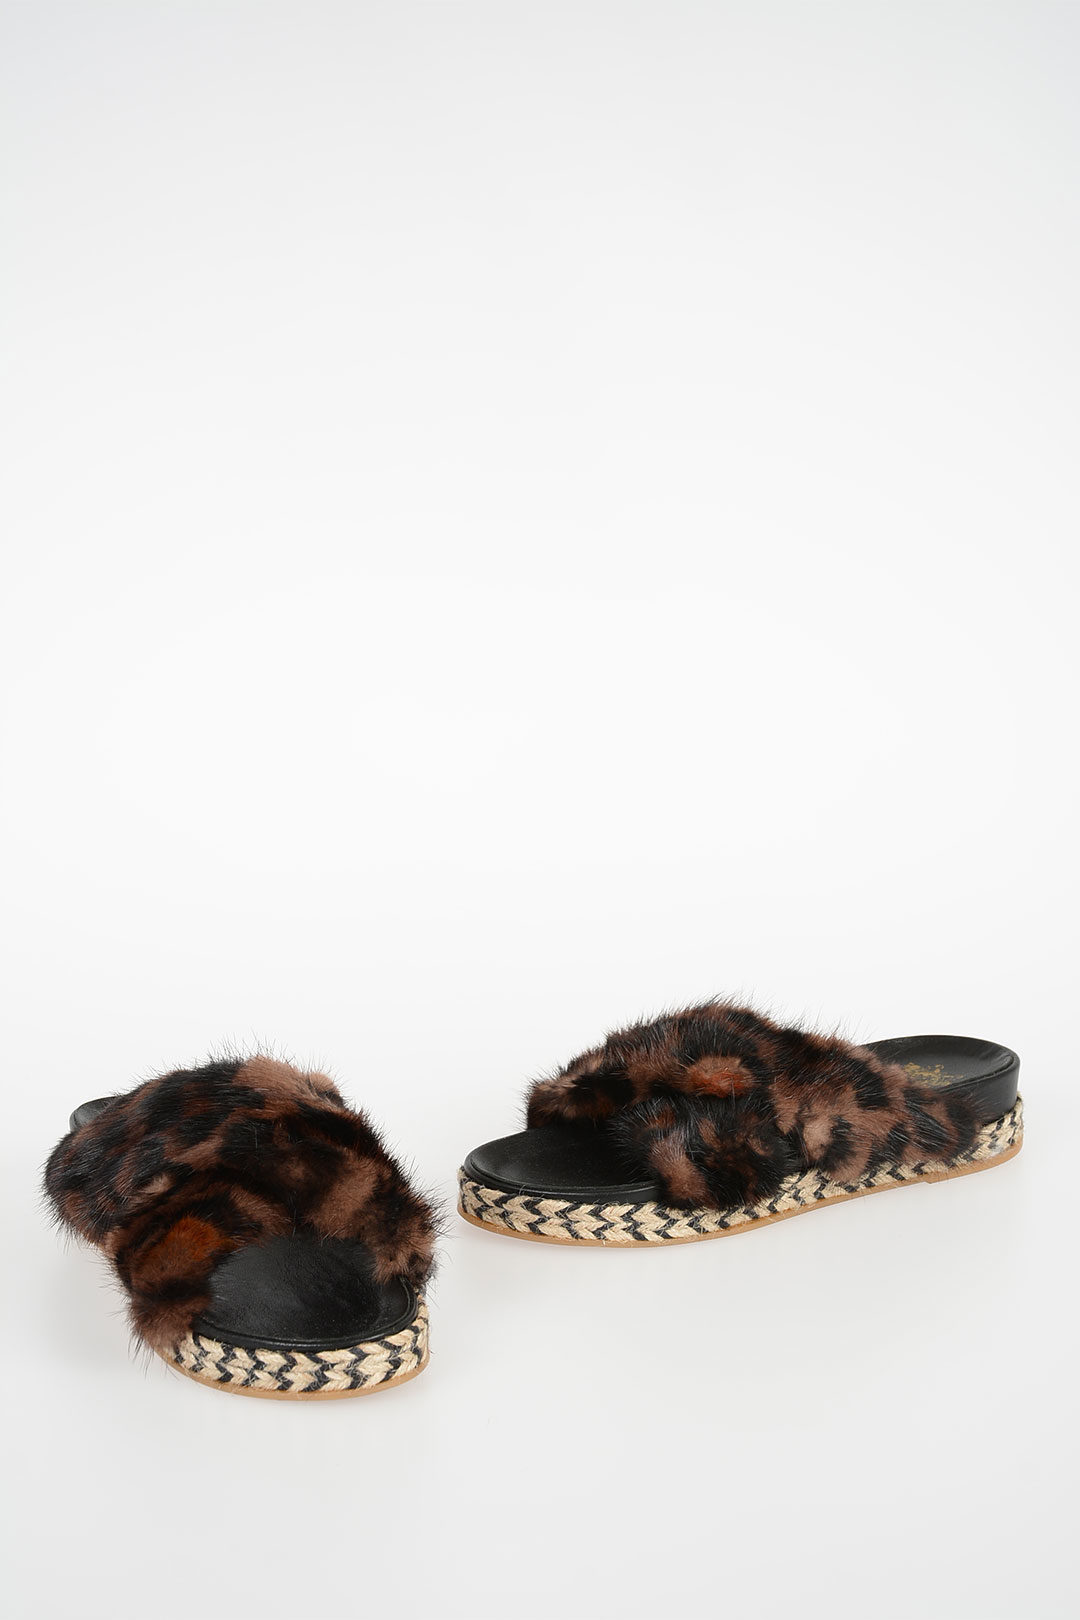 shop mr & mrs furs shoes